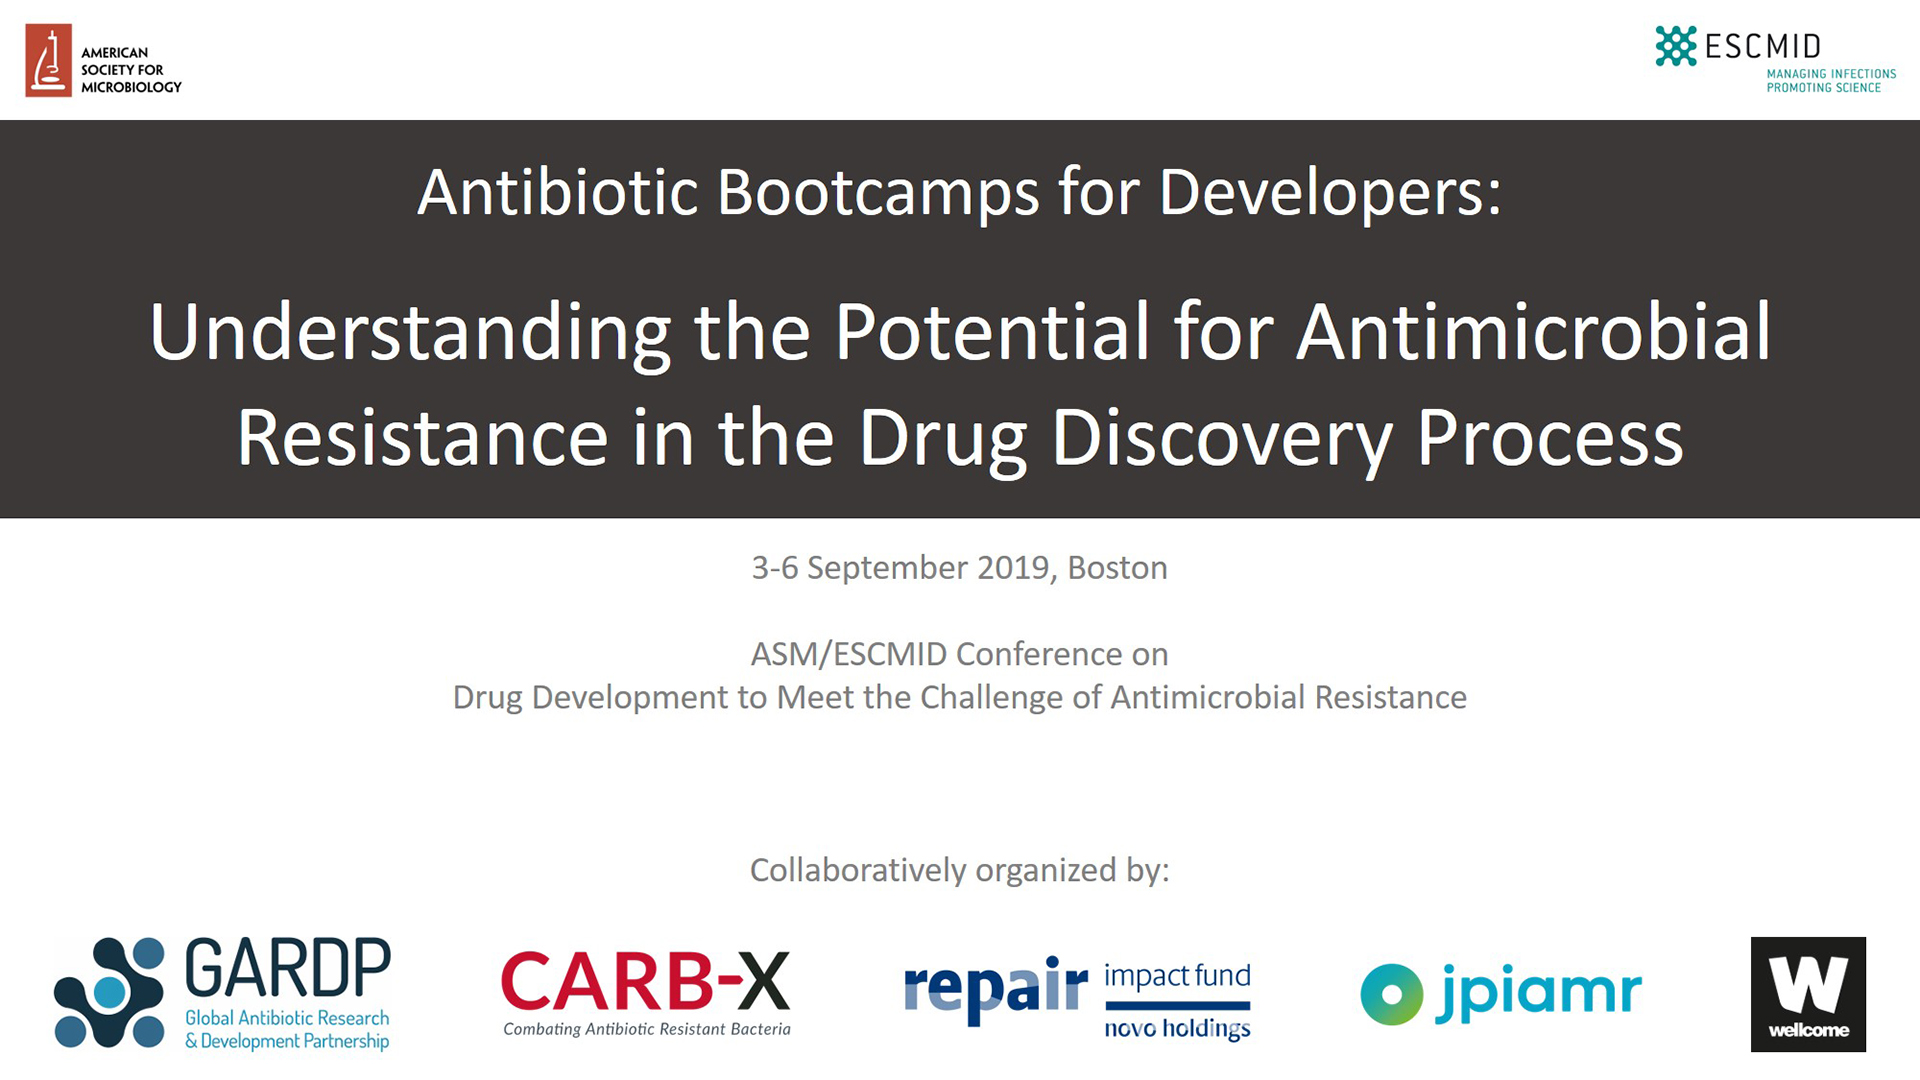 Bootcamp: Understanding the Potential for Antimicrobial Resistance in the Drug Discovery Process (ASM/ESCMID 2019)